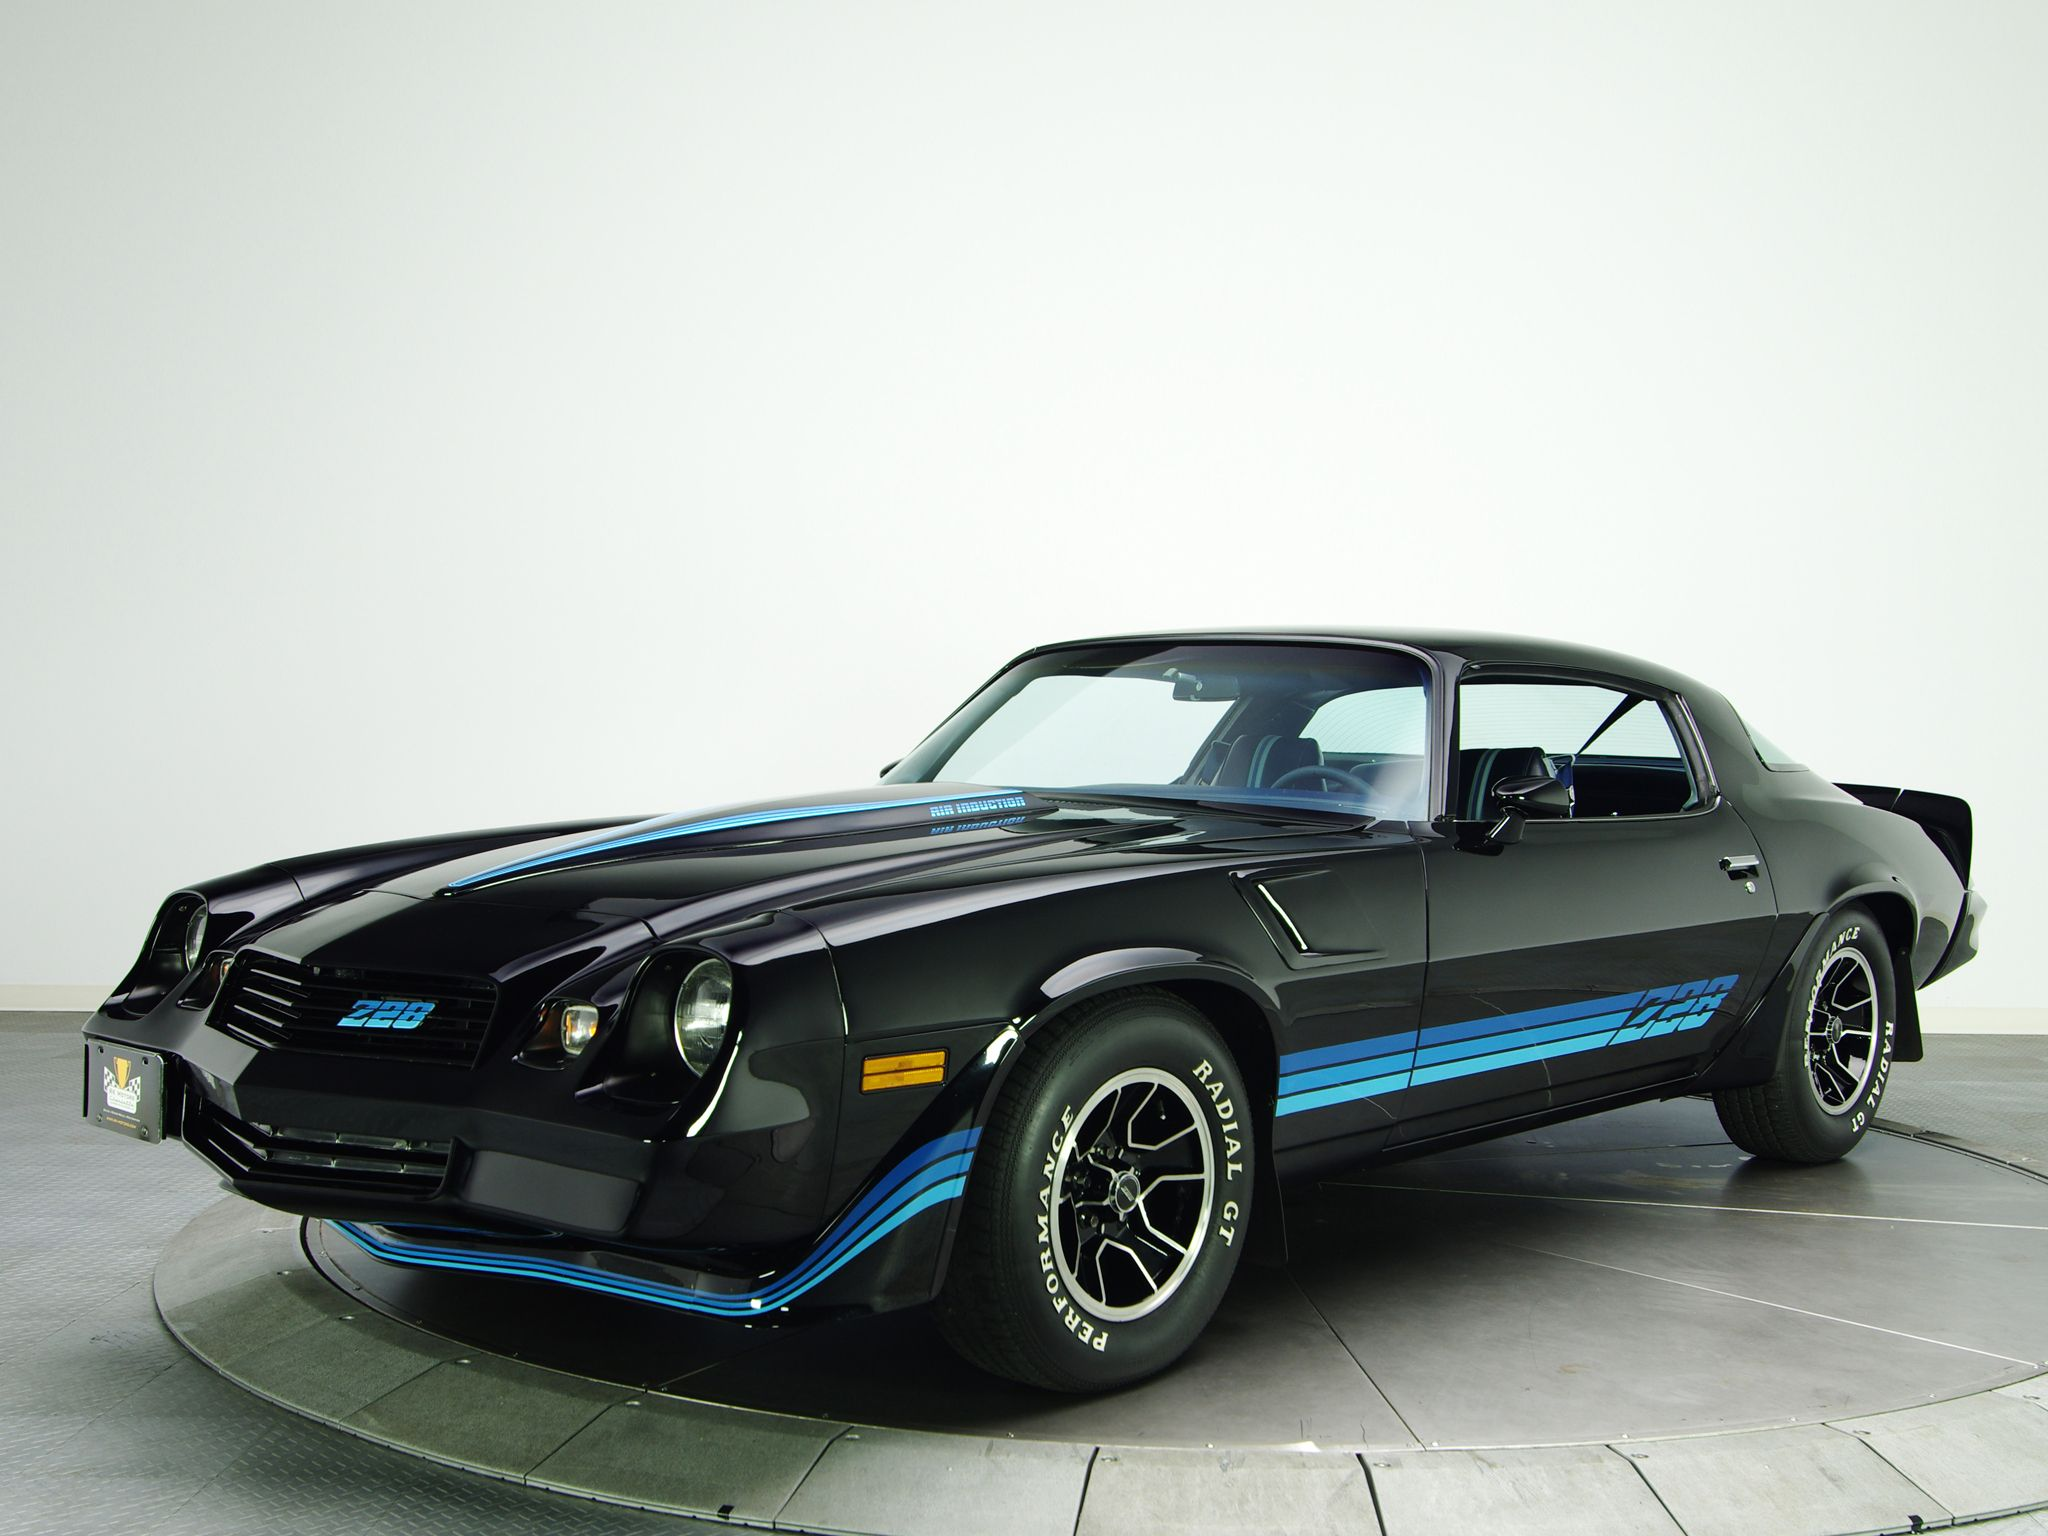 Camaro Z28 Camaros Pinterest Chevrolet And Cars 1978 Rs